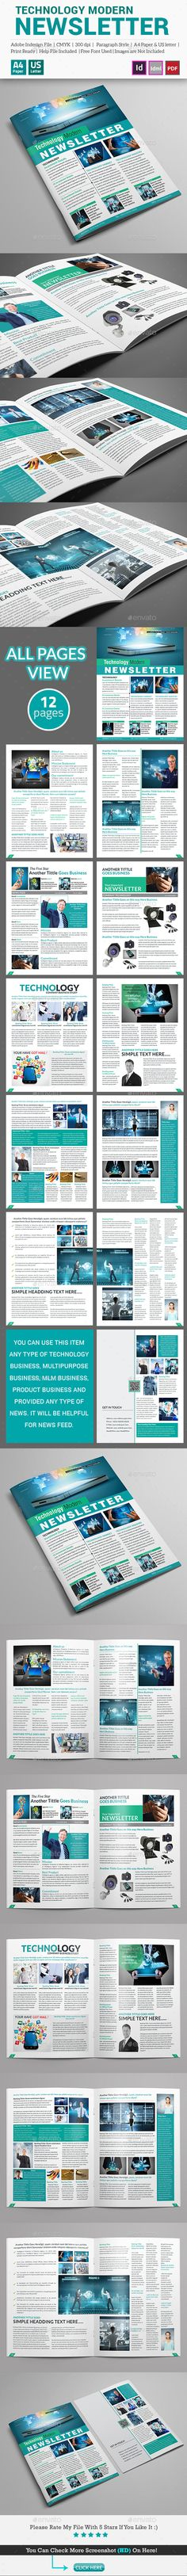 4-Pages Newsletter Template | Newsletter templates